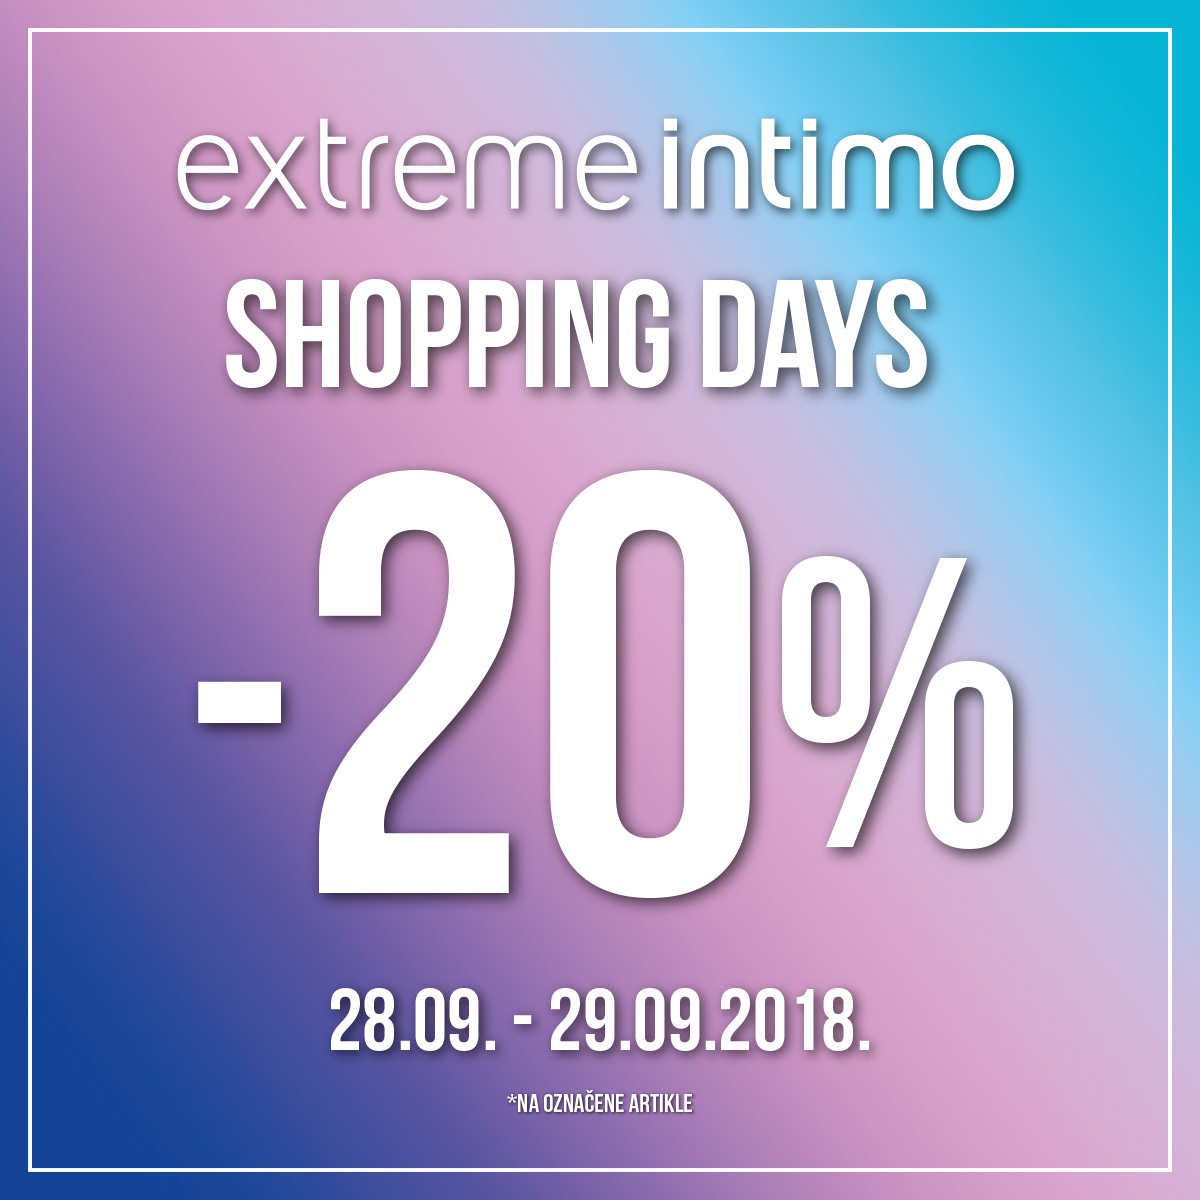 MALL-OF-SPLIT----SHOPPING-DAYS---20%-OZNACENI-ARTIKLI---HR---PL-2018---1200-X-1200-PX